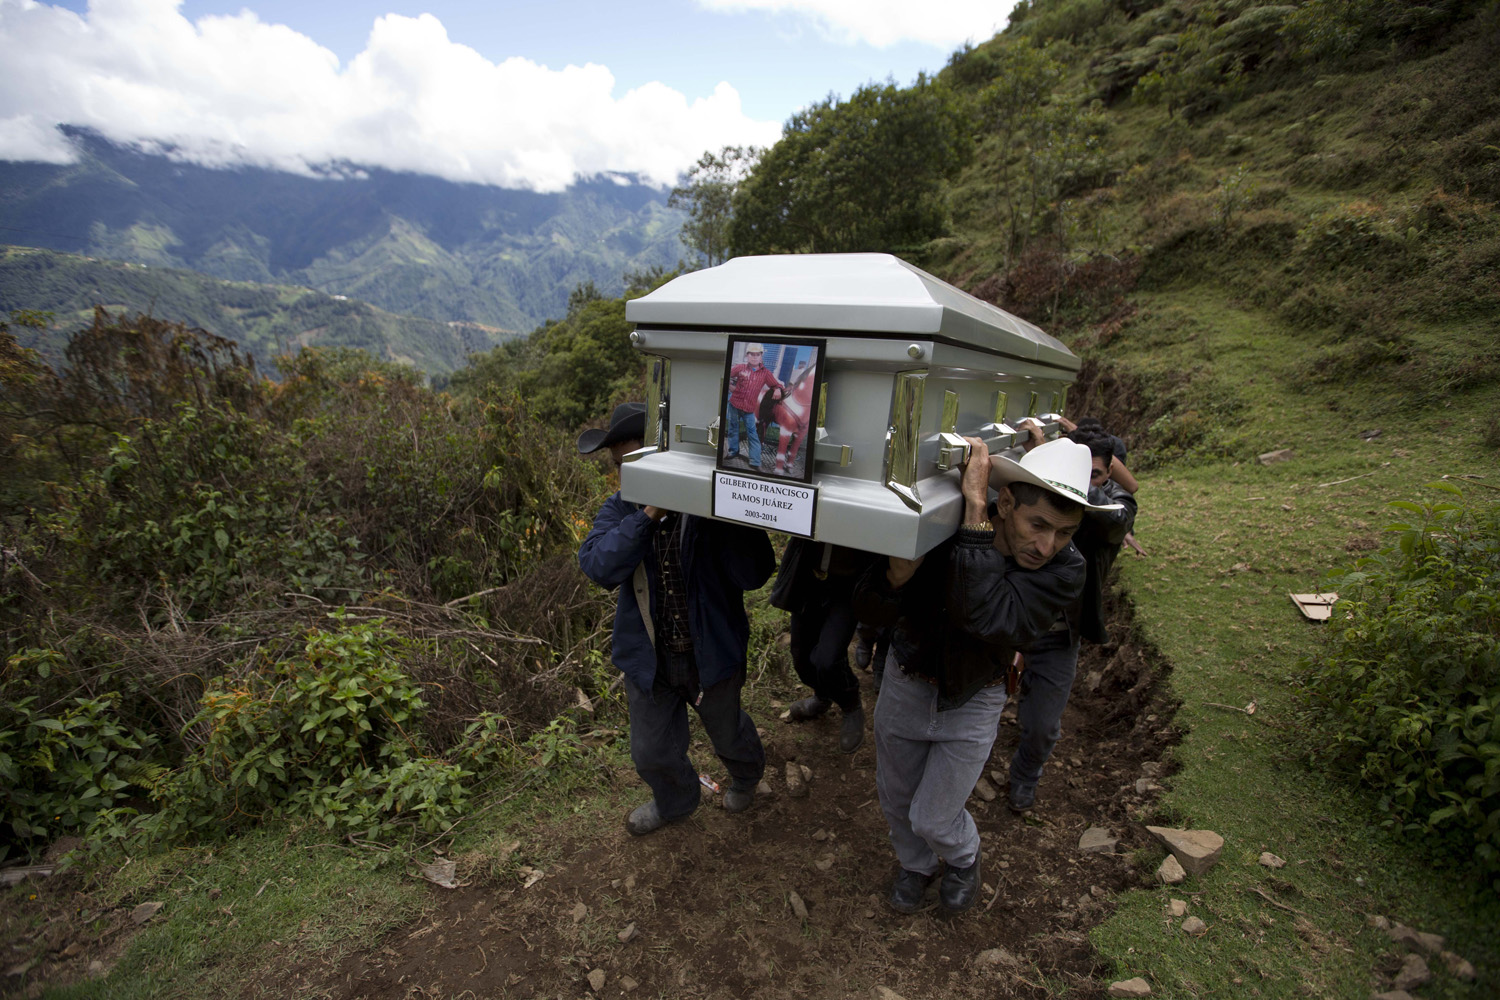 Jul. 12, 2014. Relatives carry to a local cemetery, the coffin containing the remains of Gilberto Francisco Ramos Juarez, a Guatemalan migrant boy whose decomposed body was found in the Rio Grande Valley of South Texas, in San Jose Las Flores, Guatemala.